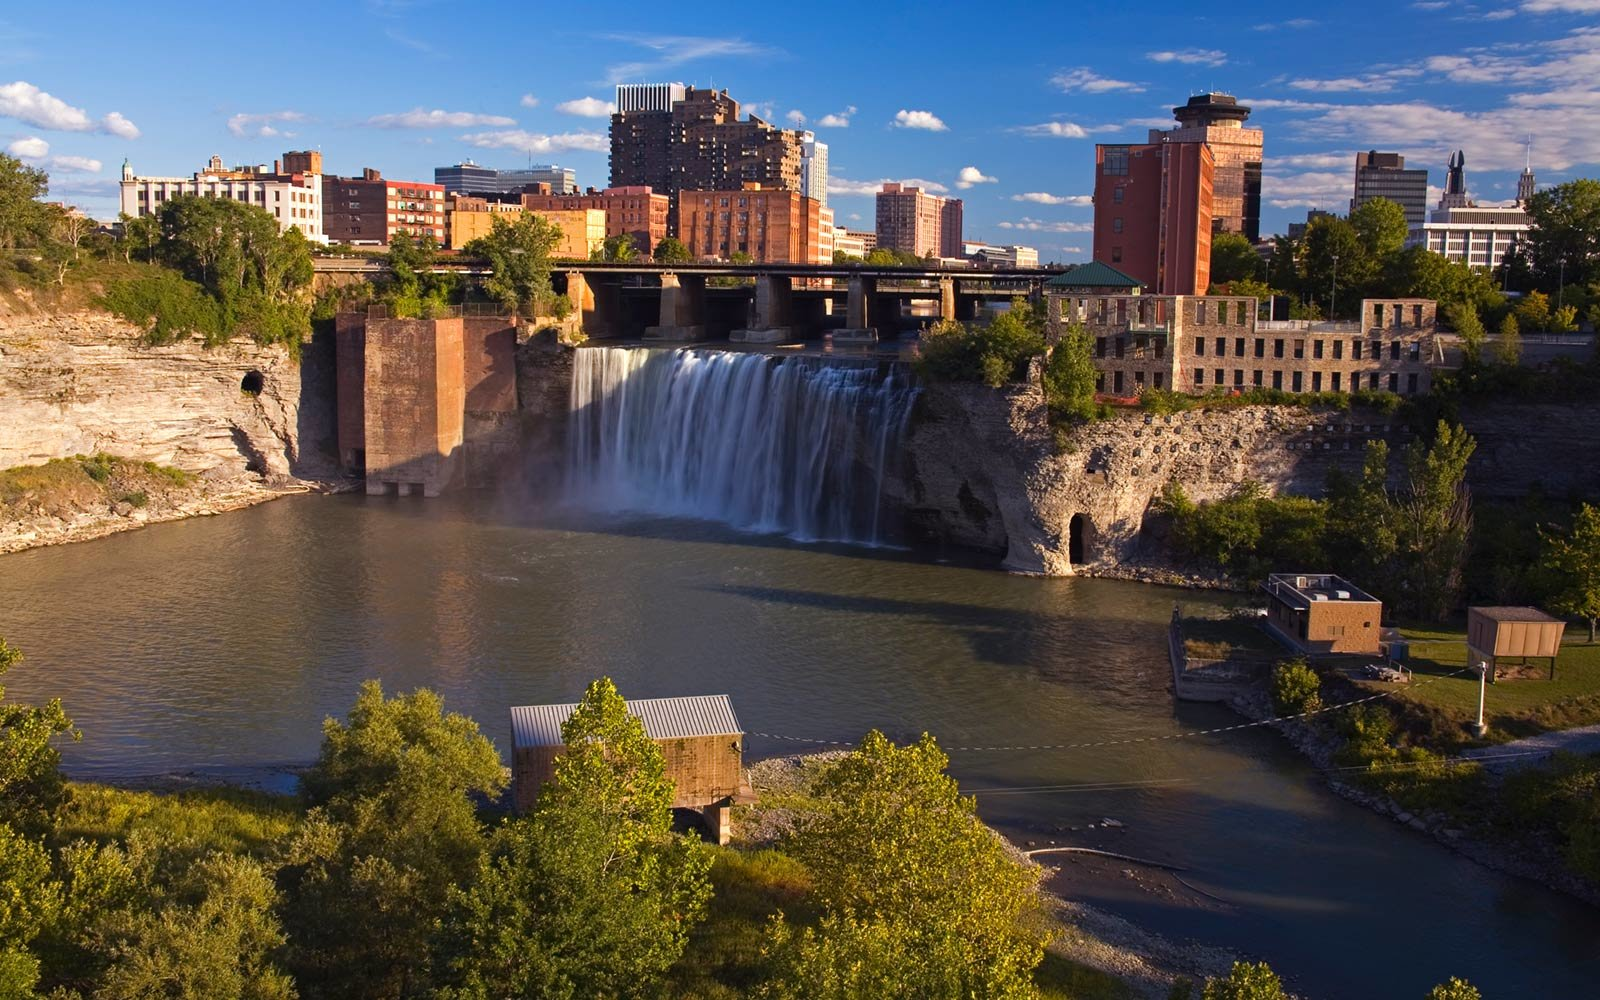 7. Rochester, New York